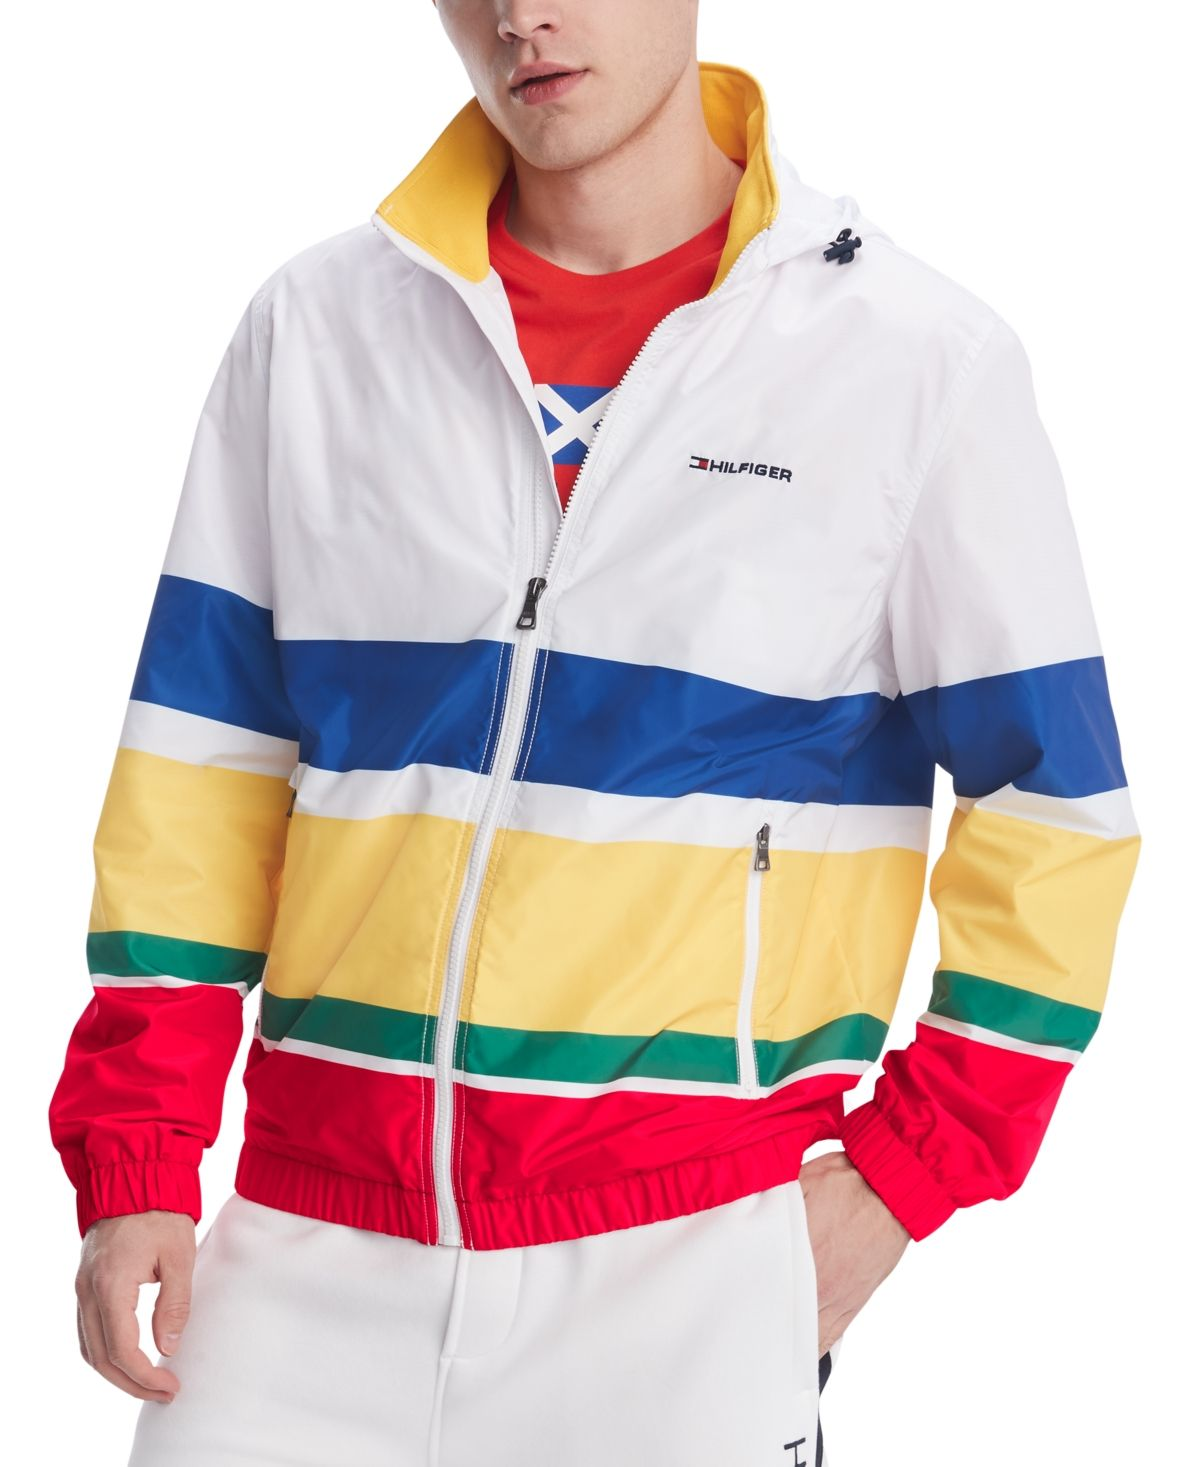 Tommy Hilfiger Men S Weekender Striped Water Resistant Yacht Jacket Bright White Pt In 2021 Tommy Hilfiger Man Tommy Hilfiger Mens Shirts [ 1467 x 1200 Pixel ]